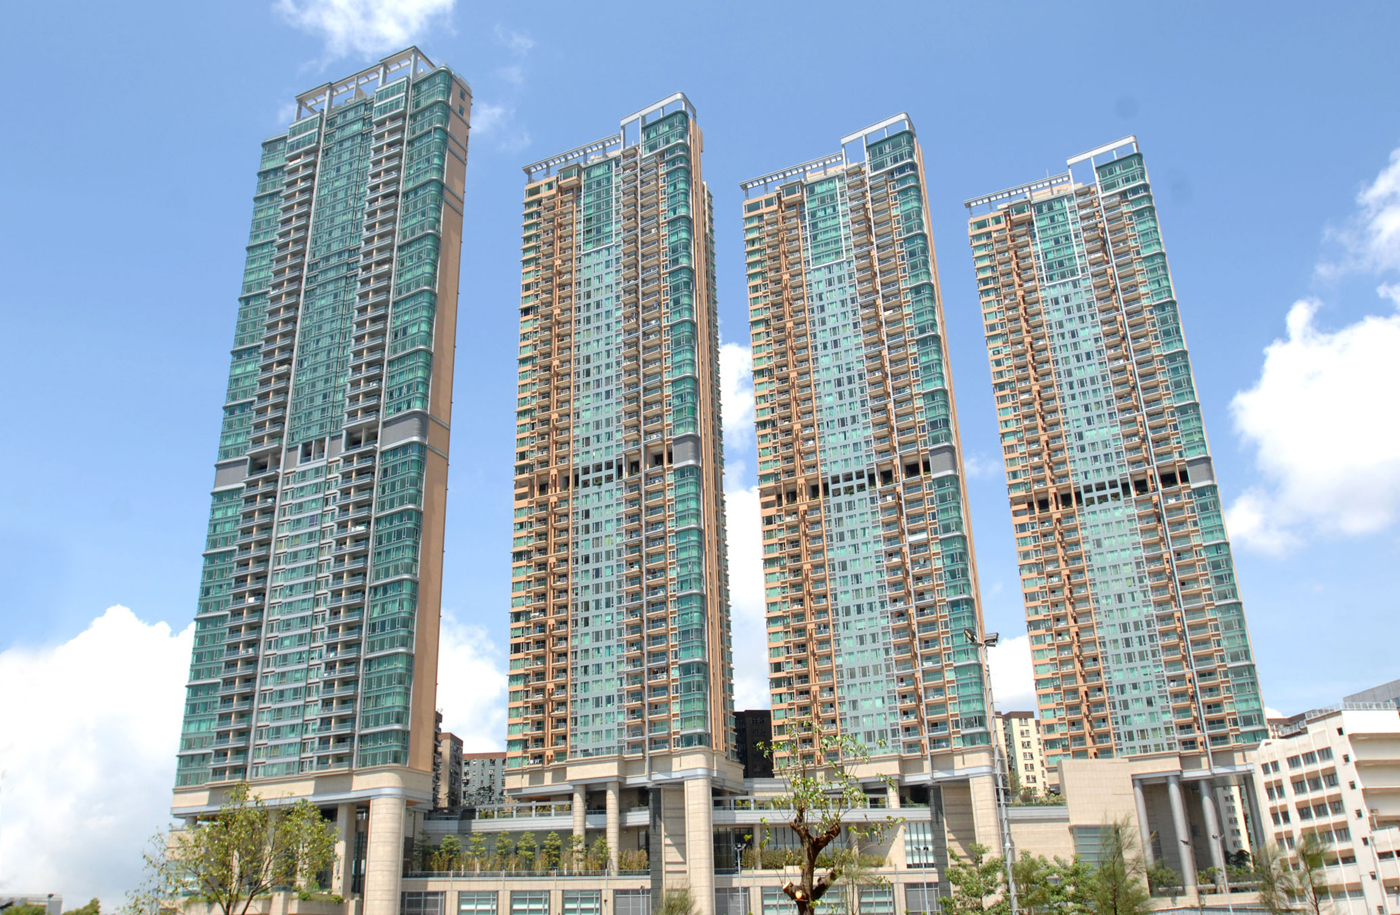 Manhattan-Hill-Condo-Towers-Hong-Kong-courtesy-of-Sun-Hung-Kai-Properties